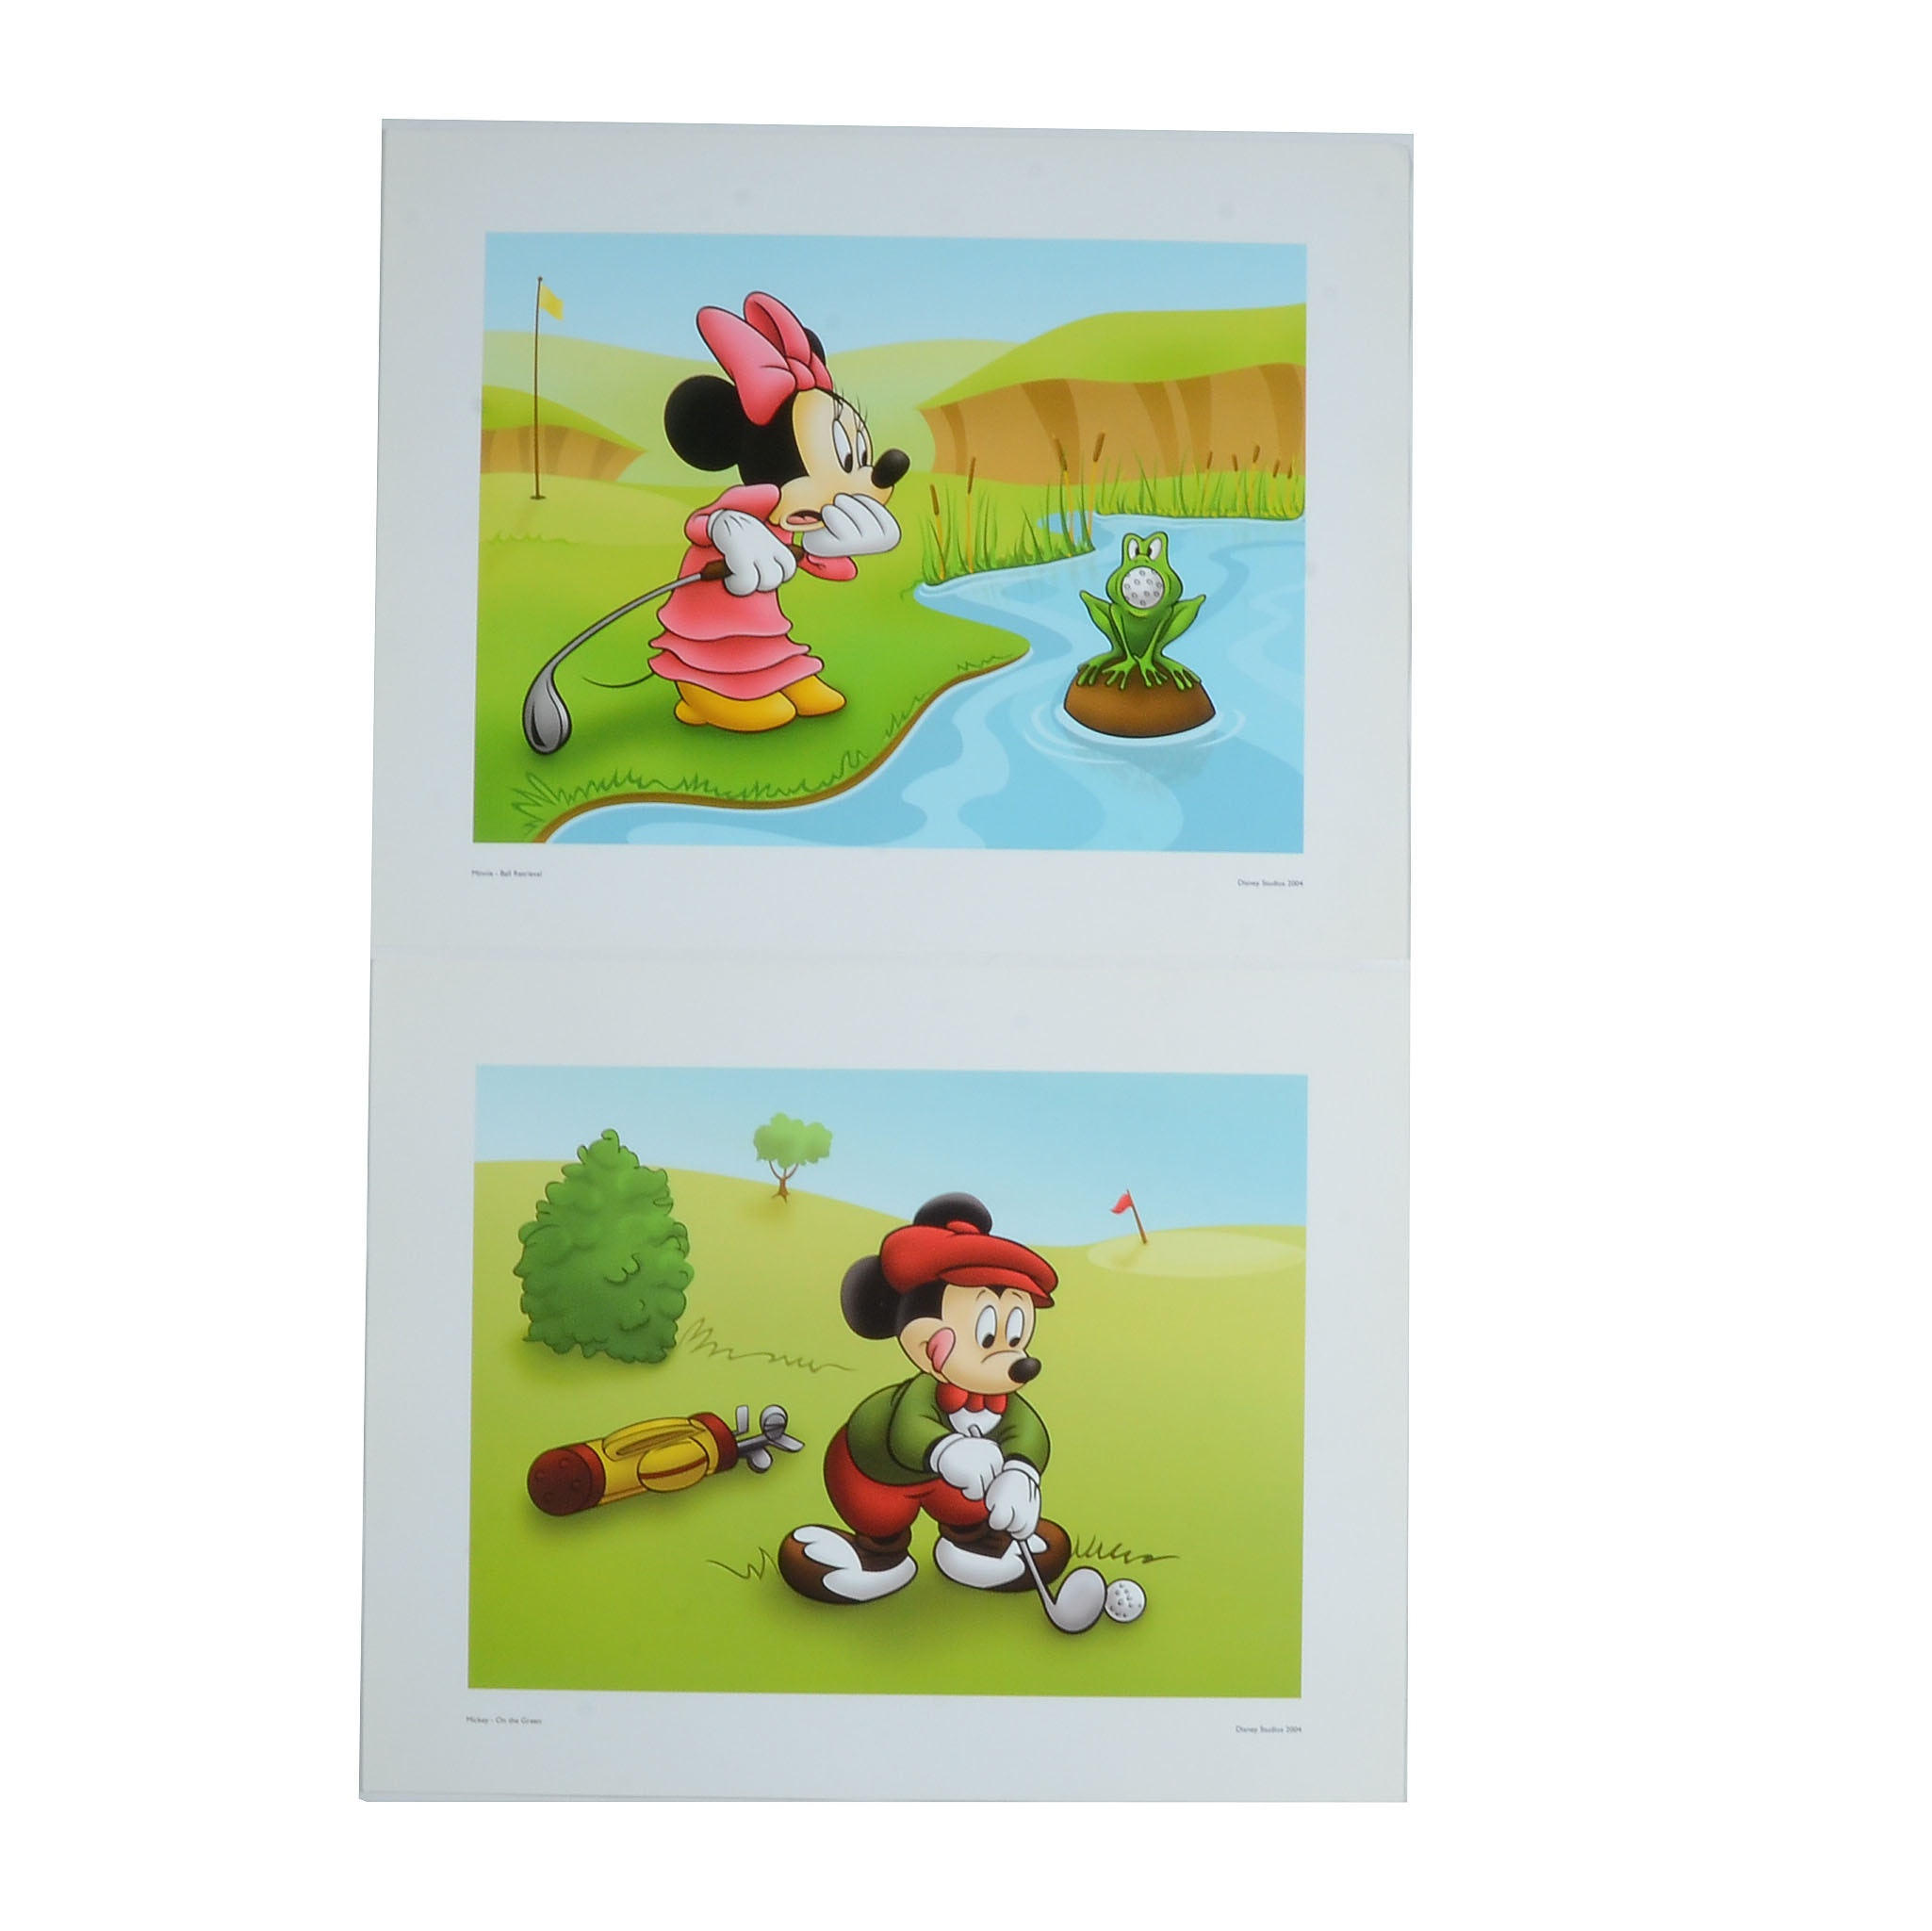 Two Offset Lithograph Posters of Micky and Minnie Mouse Playing Golf